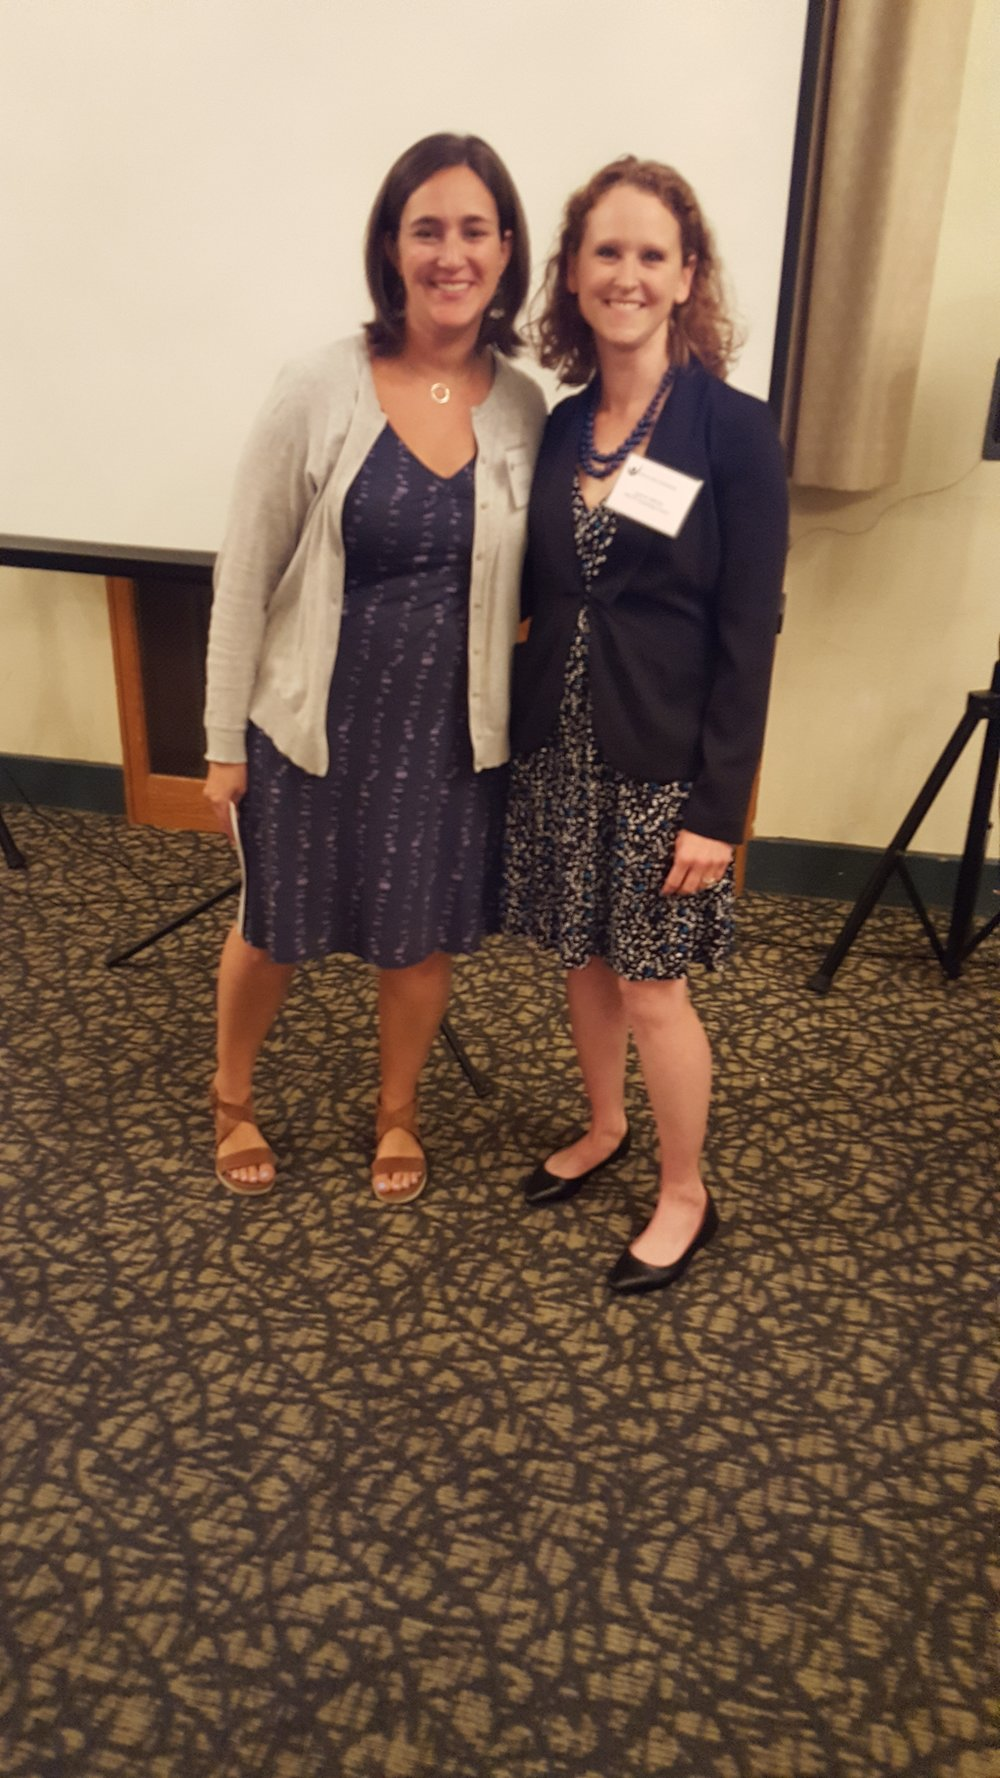 Special Kids Board Vice President Lauren Litchfield (Left) with PACTT Transition Specialist Lauren Mucha